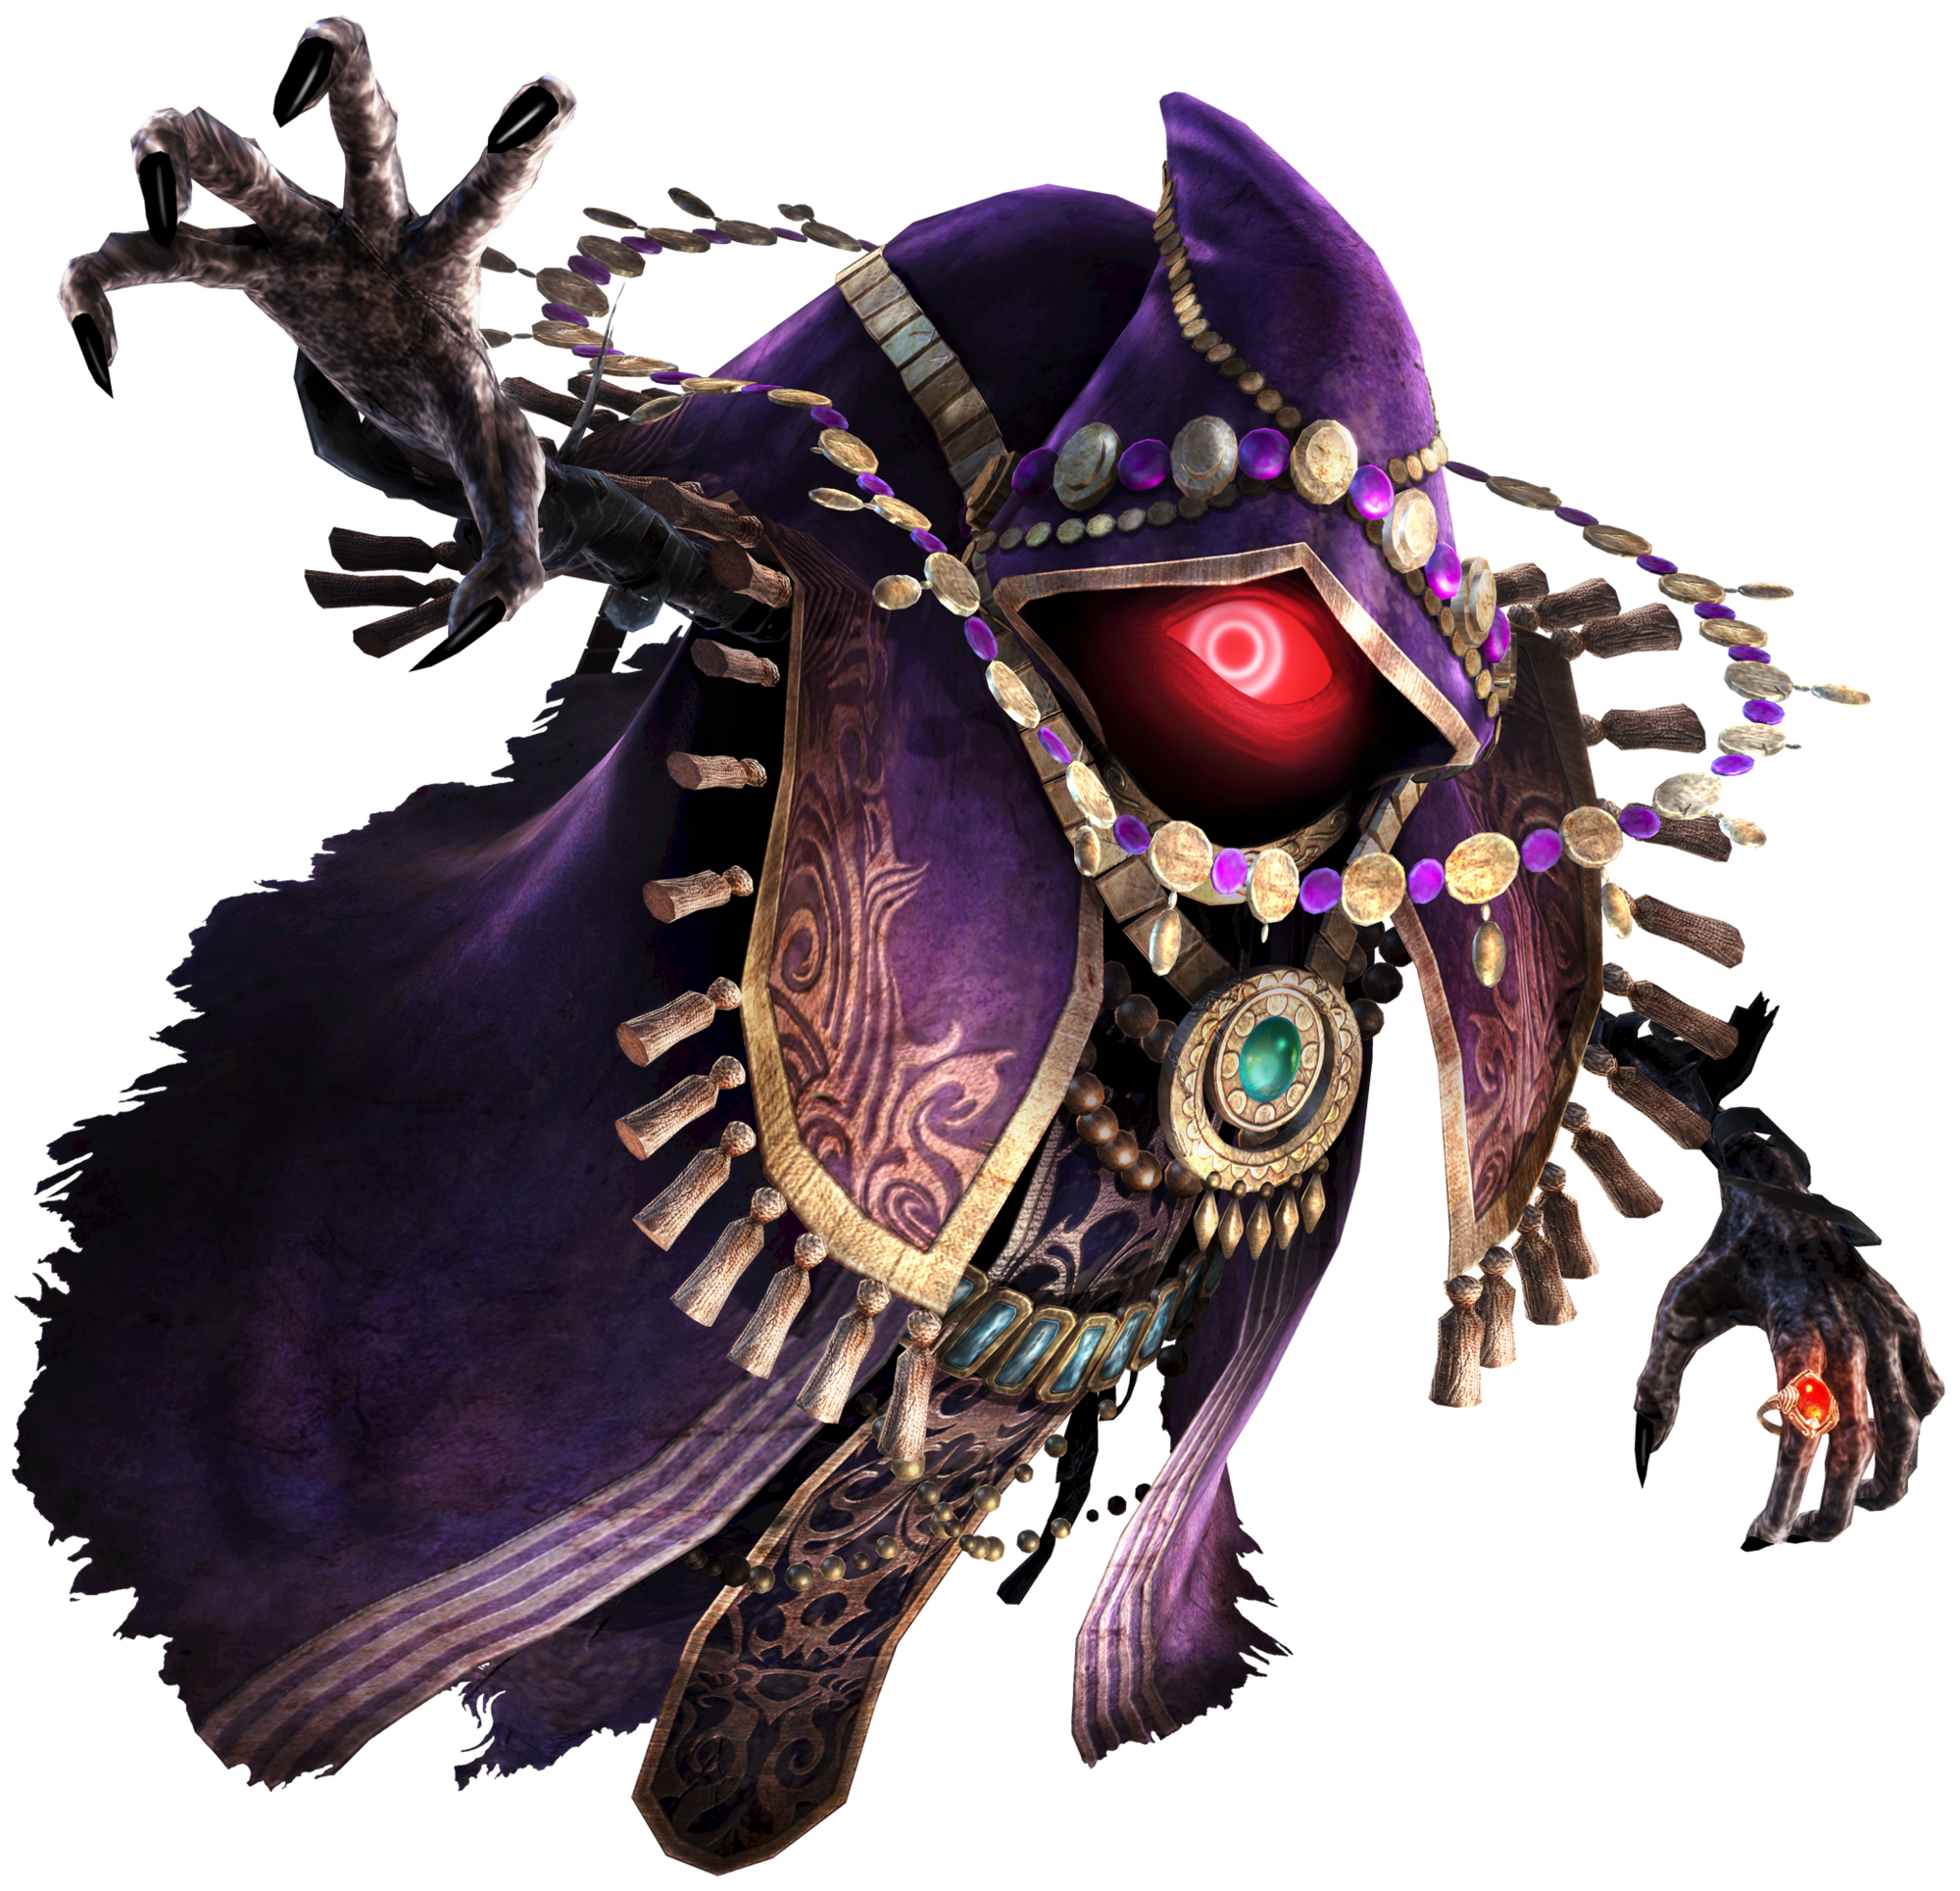 How to defeat gohma in hyrule warriors - Wizro